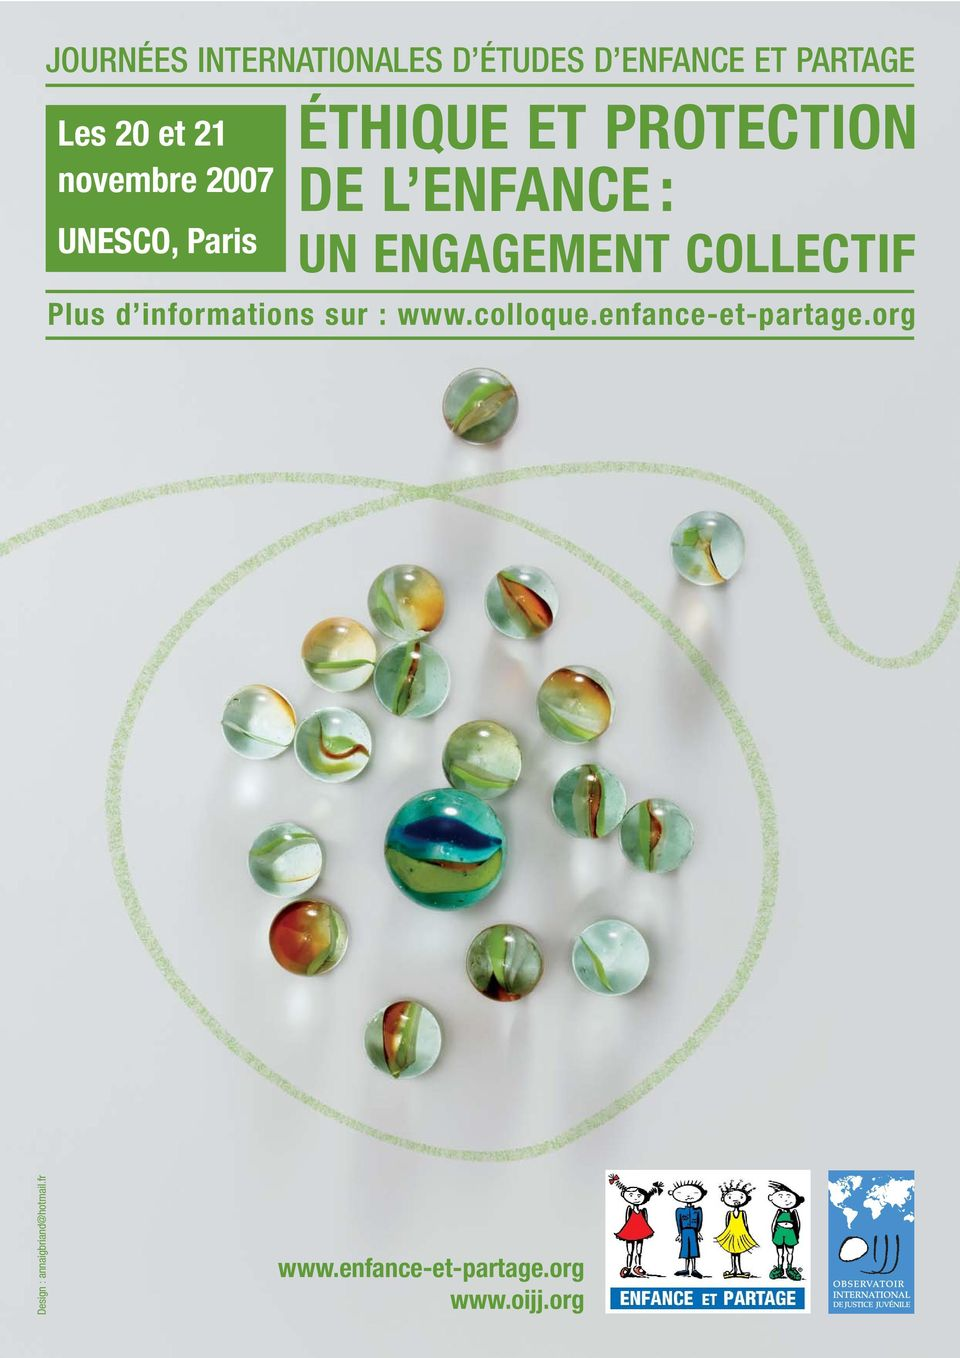 ENGAGEMENT COLLECTIF Plus d informations sur : www.colloque.